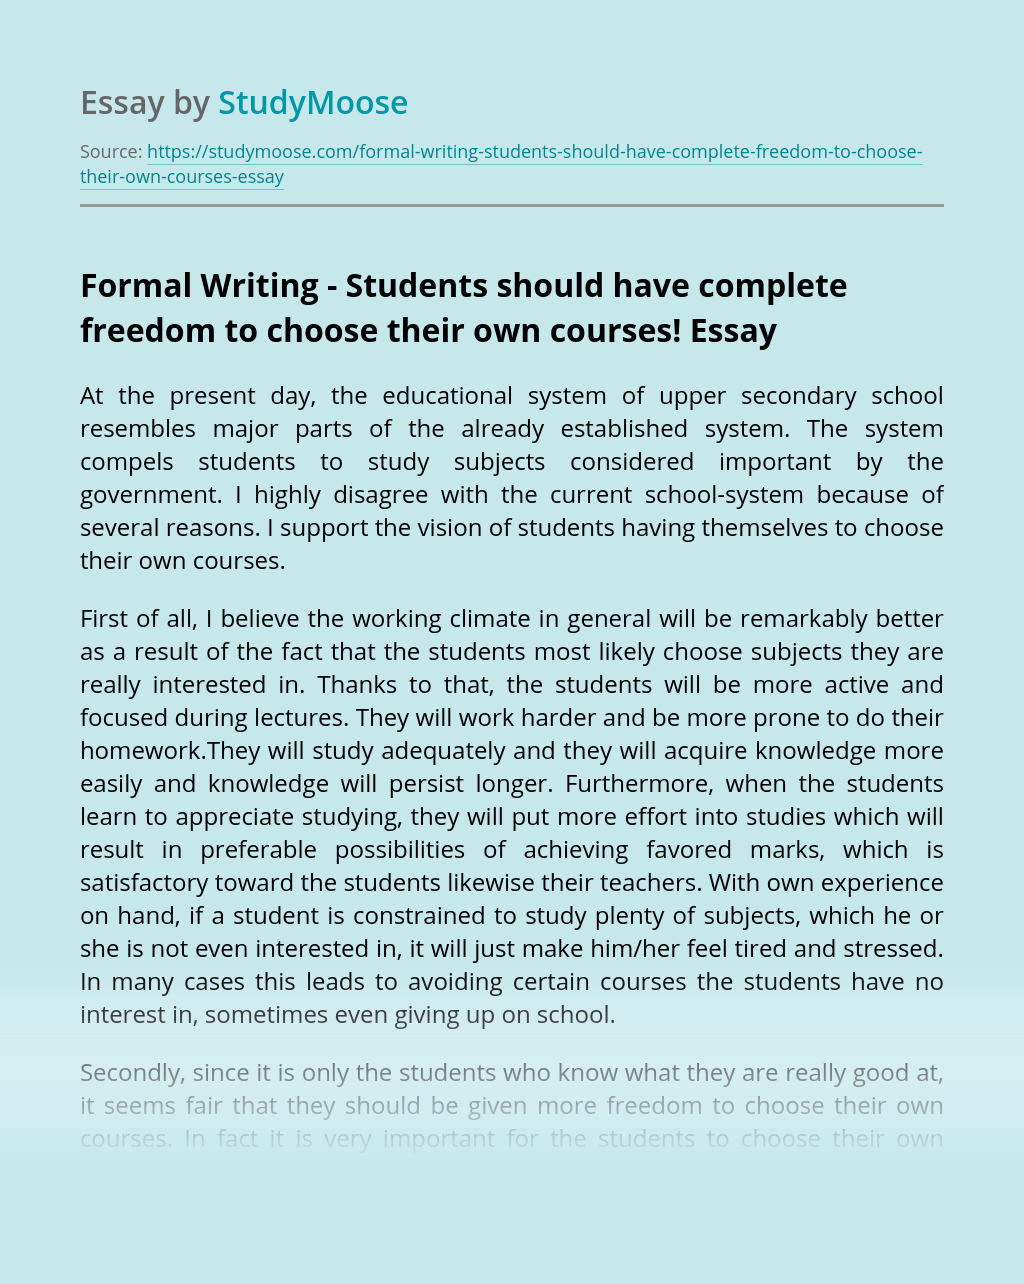 Formal Writing – Students should have complete freedom to choose their own courses!